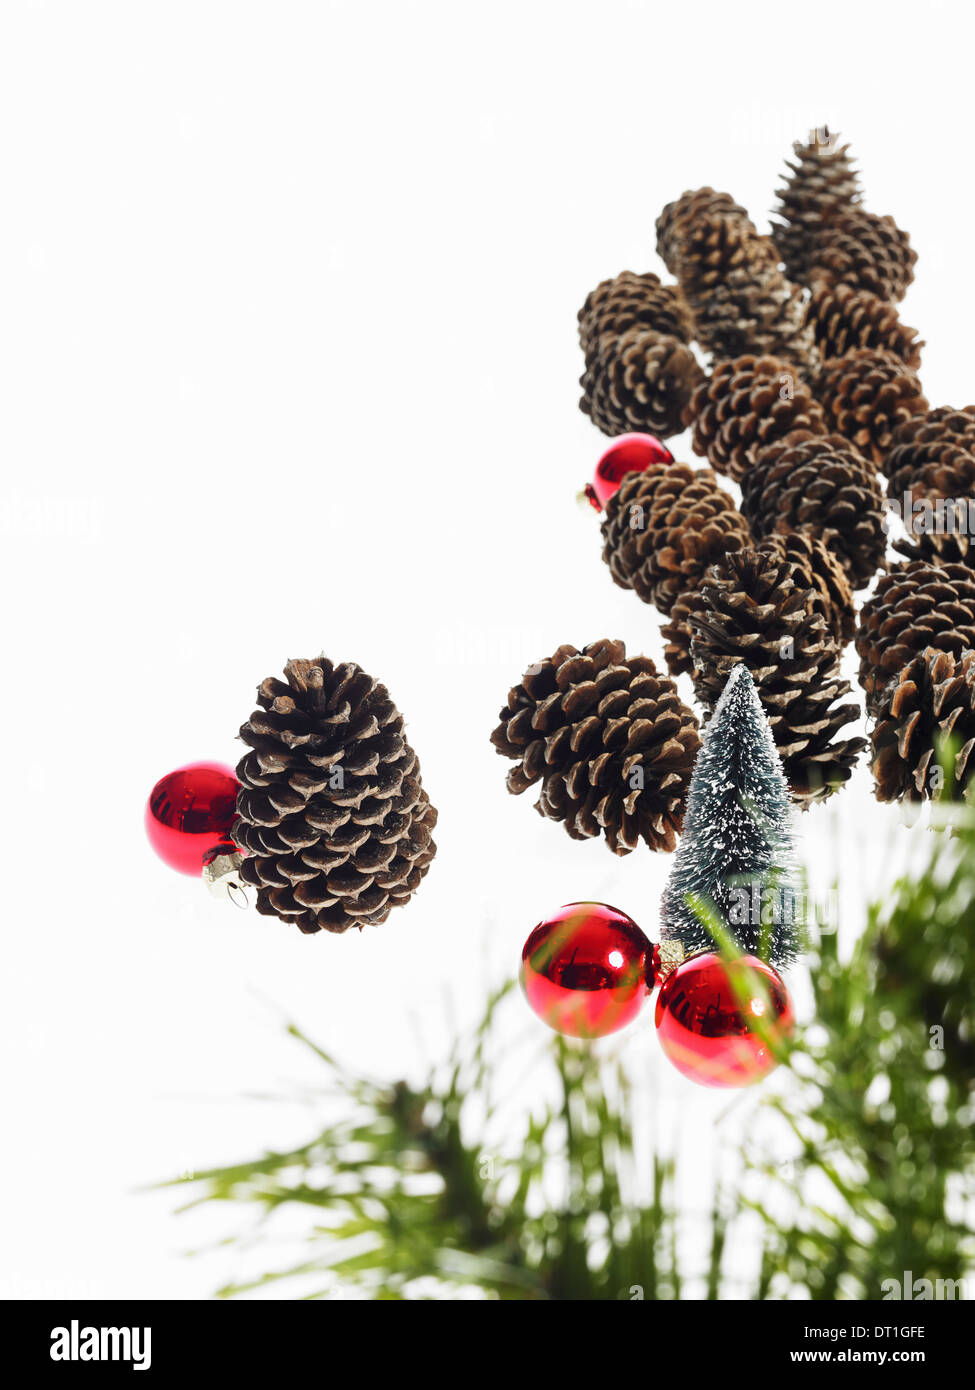 A pine tree branch with green needles Christmas decorations Pine cones and small red shiny ornaments - Stock Image